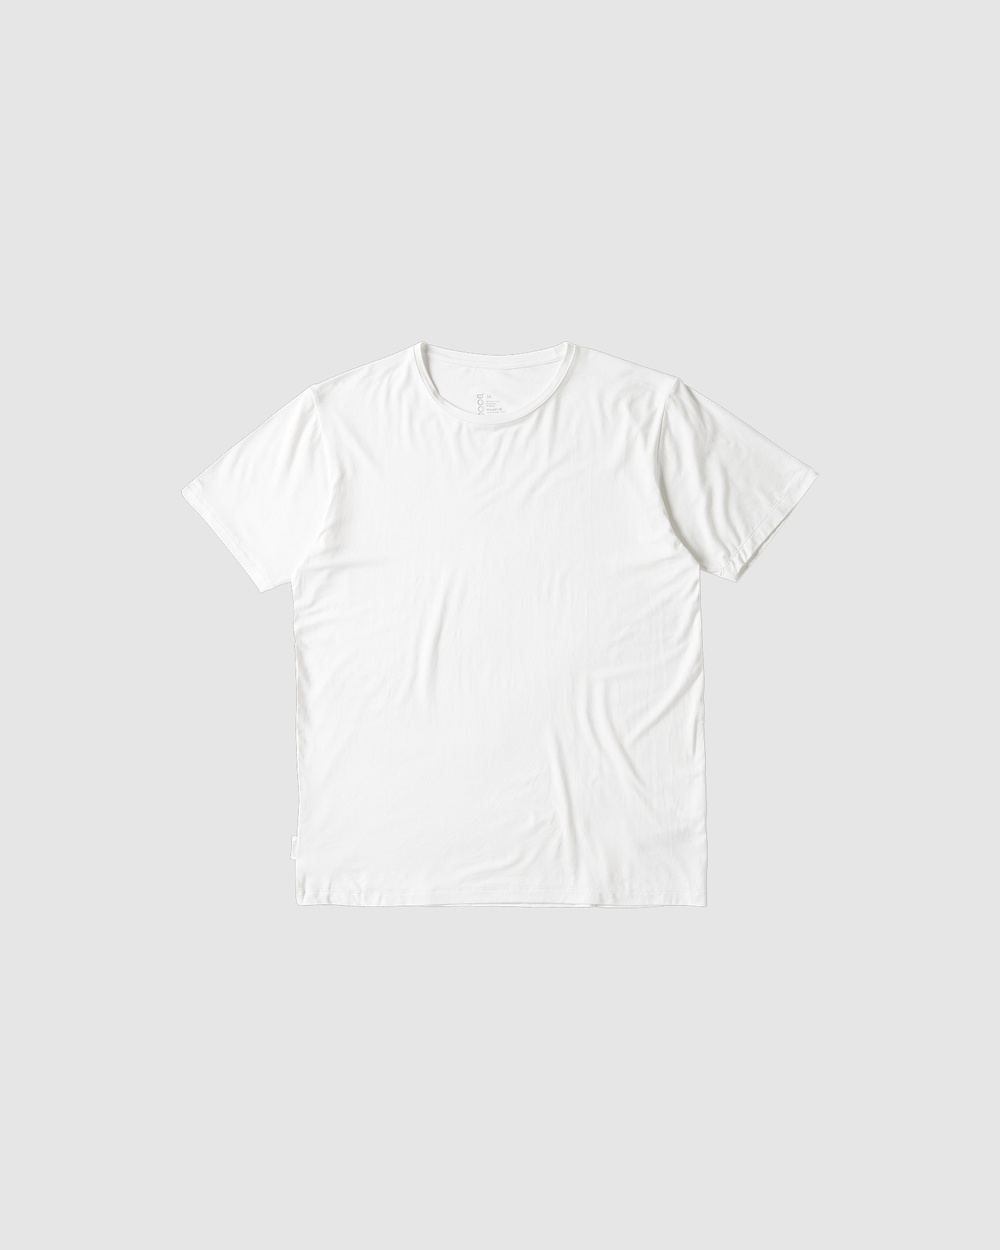 Boody Organic Bamboo Eco Wear - Crew Neck T Shirt - Short Sleeve T-Shirts (White) Crew Neck T-Shirt